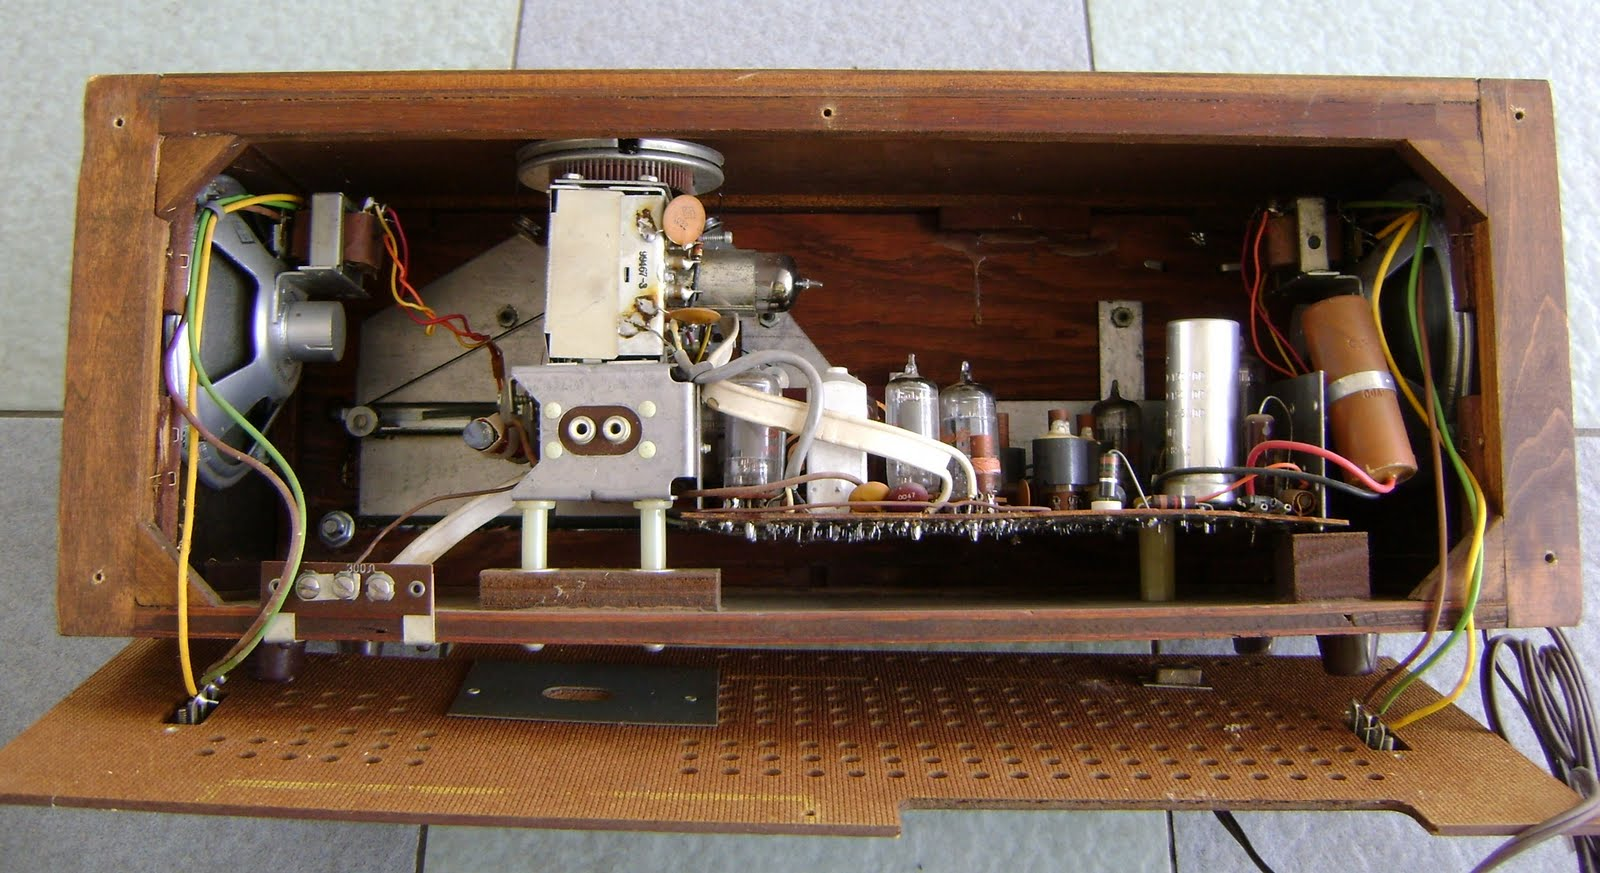 Kinta Valley Audio July 2011. For Sale Vintage Sears Silvertone Model 5022 Stereo Amfm Tube Radio 110v Power Input Made In Usavery Beautiful Solid Walnut Wood Body And Very Nice. Wiring. Zenith Radio Schematics Model C730 At Scoala.co